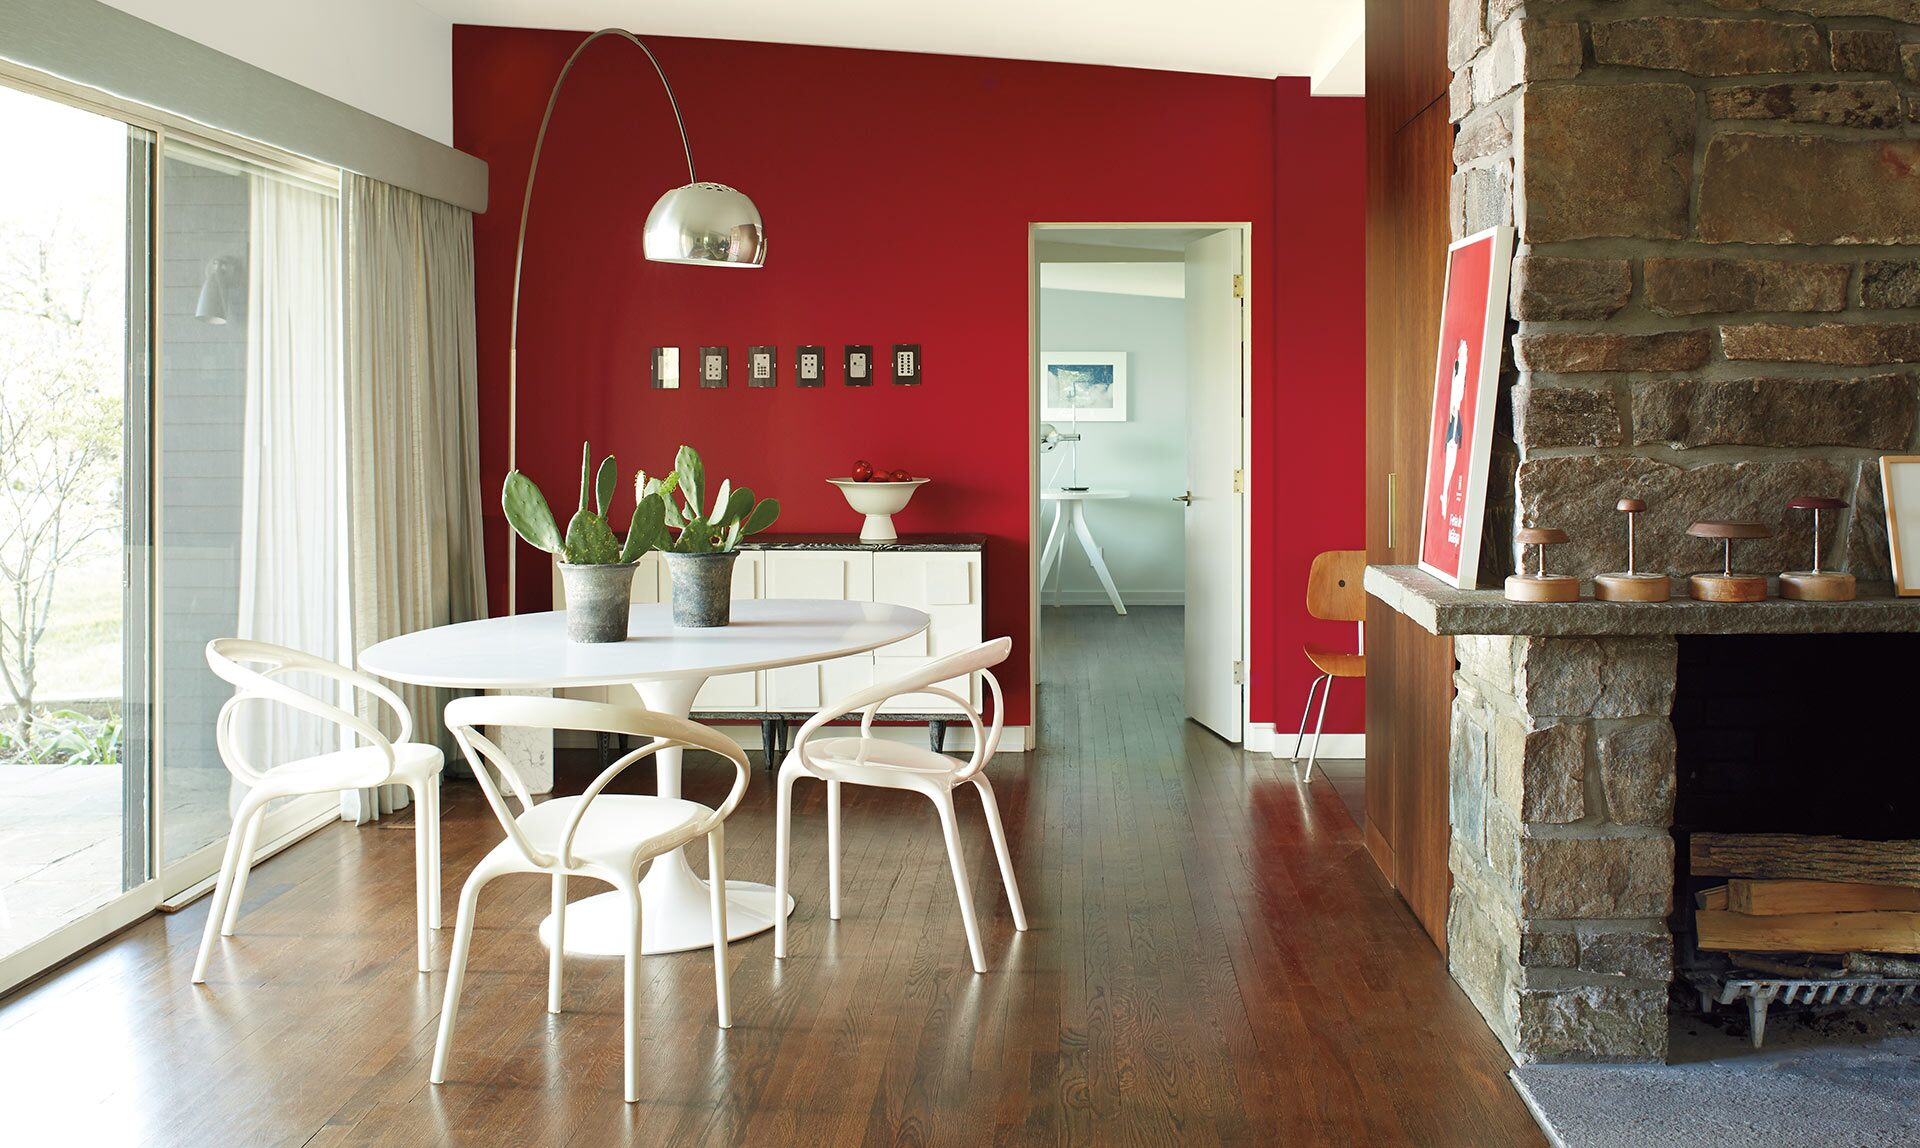 A contemporary dining room features a bold red accent wall with modern furnishings and fixtures.